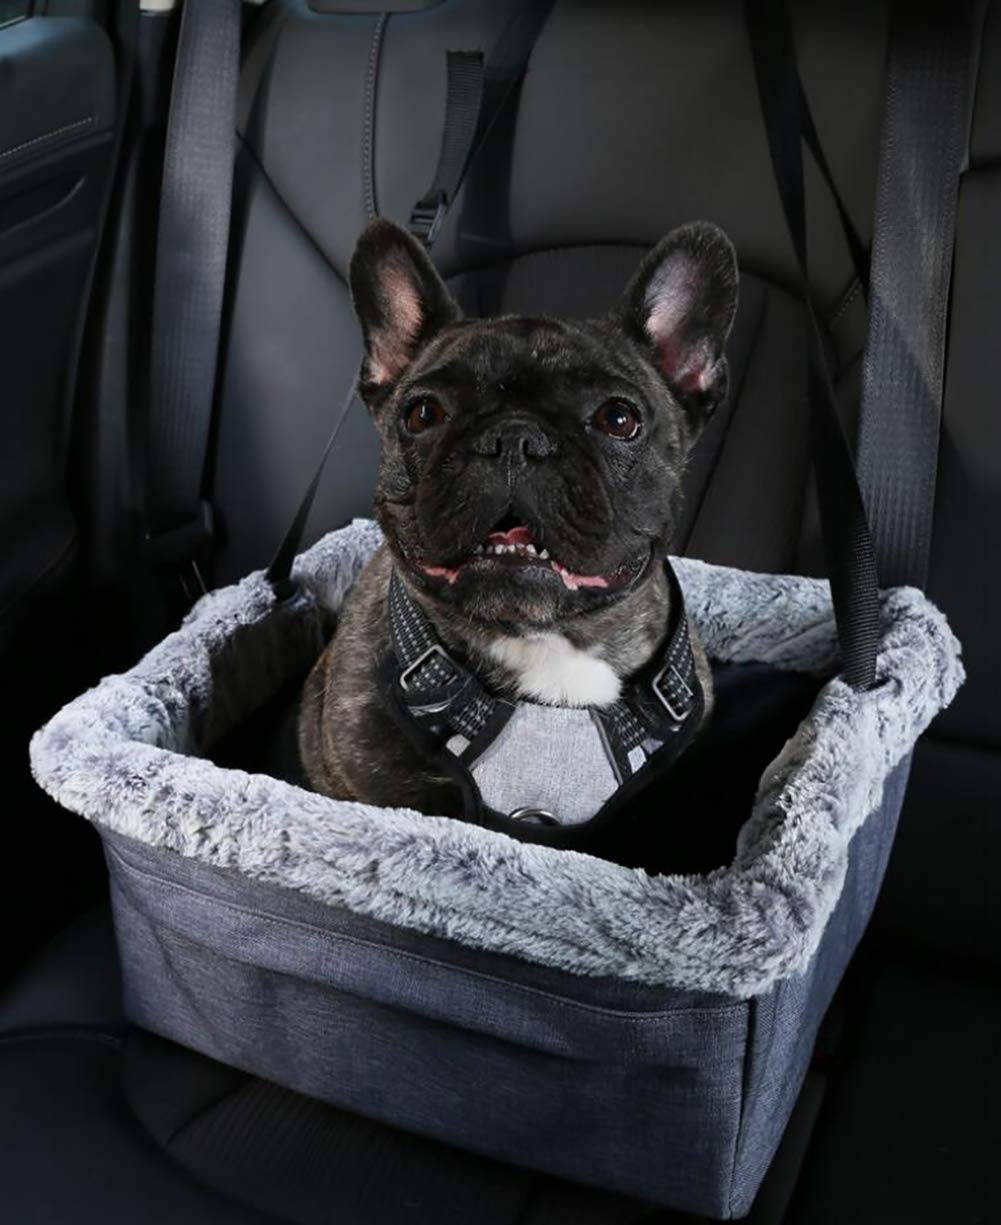 Devoted Doggy Deluxe Dog Booster Car Seat Premium Quality Metal Frame Construction Clip-on Safety Leash Zipper Storage Pocket Perfect for Small and Medium Pets Up to 15 Lbs